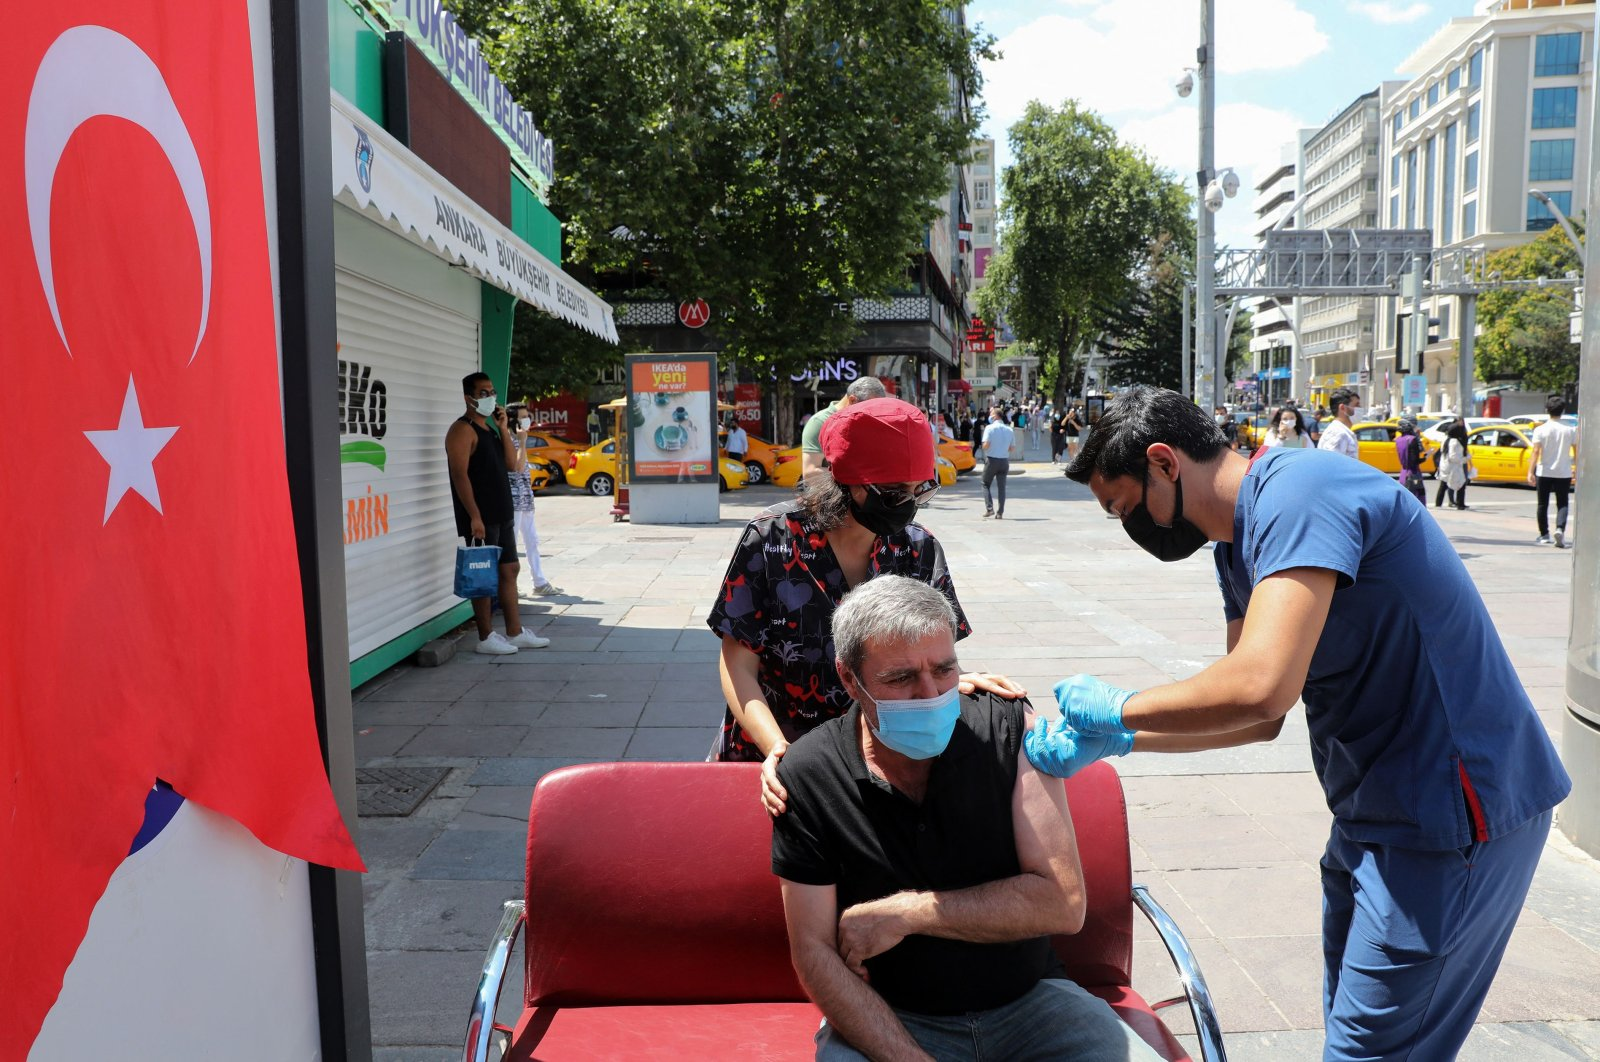 A health care worker administers a COVID-19 vaccine dose to a man at Kızılay Square, in the capital, Ankara, Turkey, July 11, 2021. (AFP PHOTO)